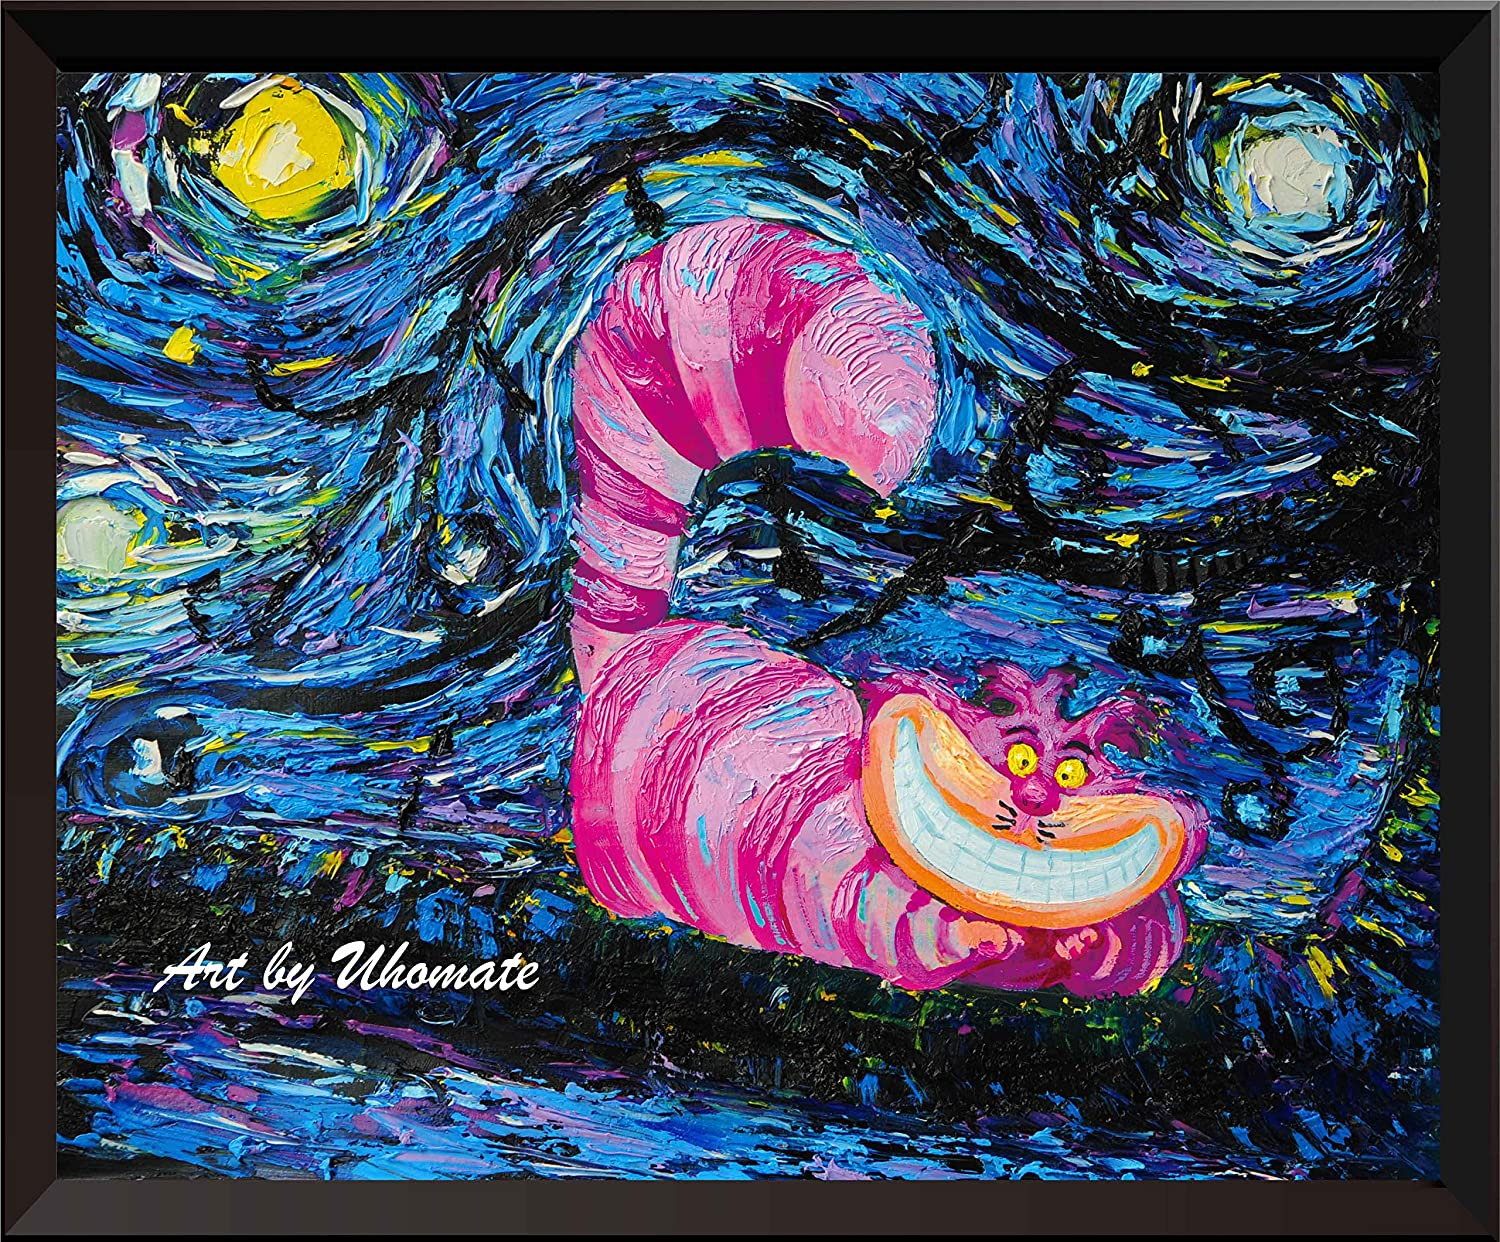 Uhomate Vincent Van Gogh Starry Night Posters Alice in Wonderland Cheshire Cat Alice Wonderland Home Canvas Wall Art Baby Gift Nursery Decor Living Room Wall Decor A009 (8X10)